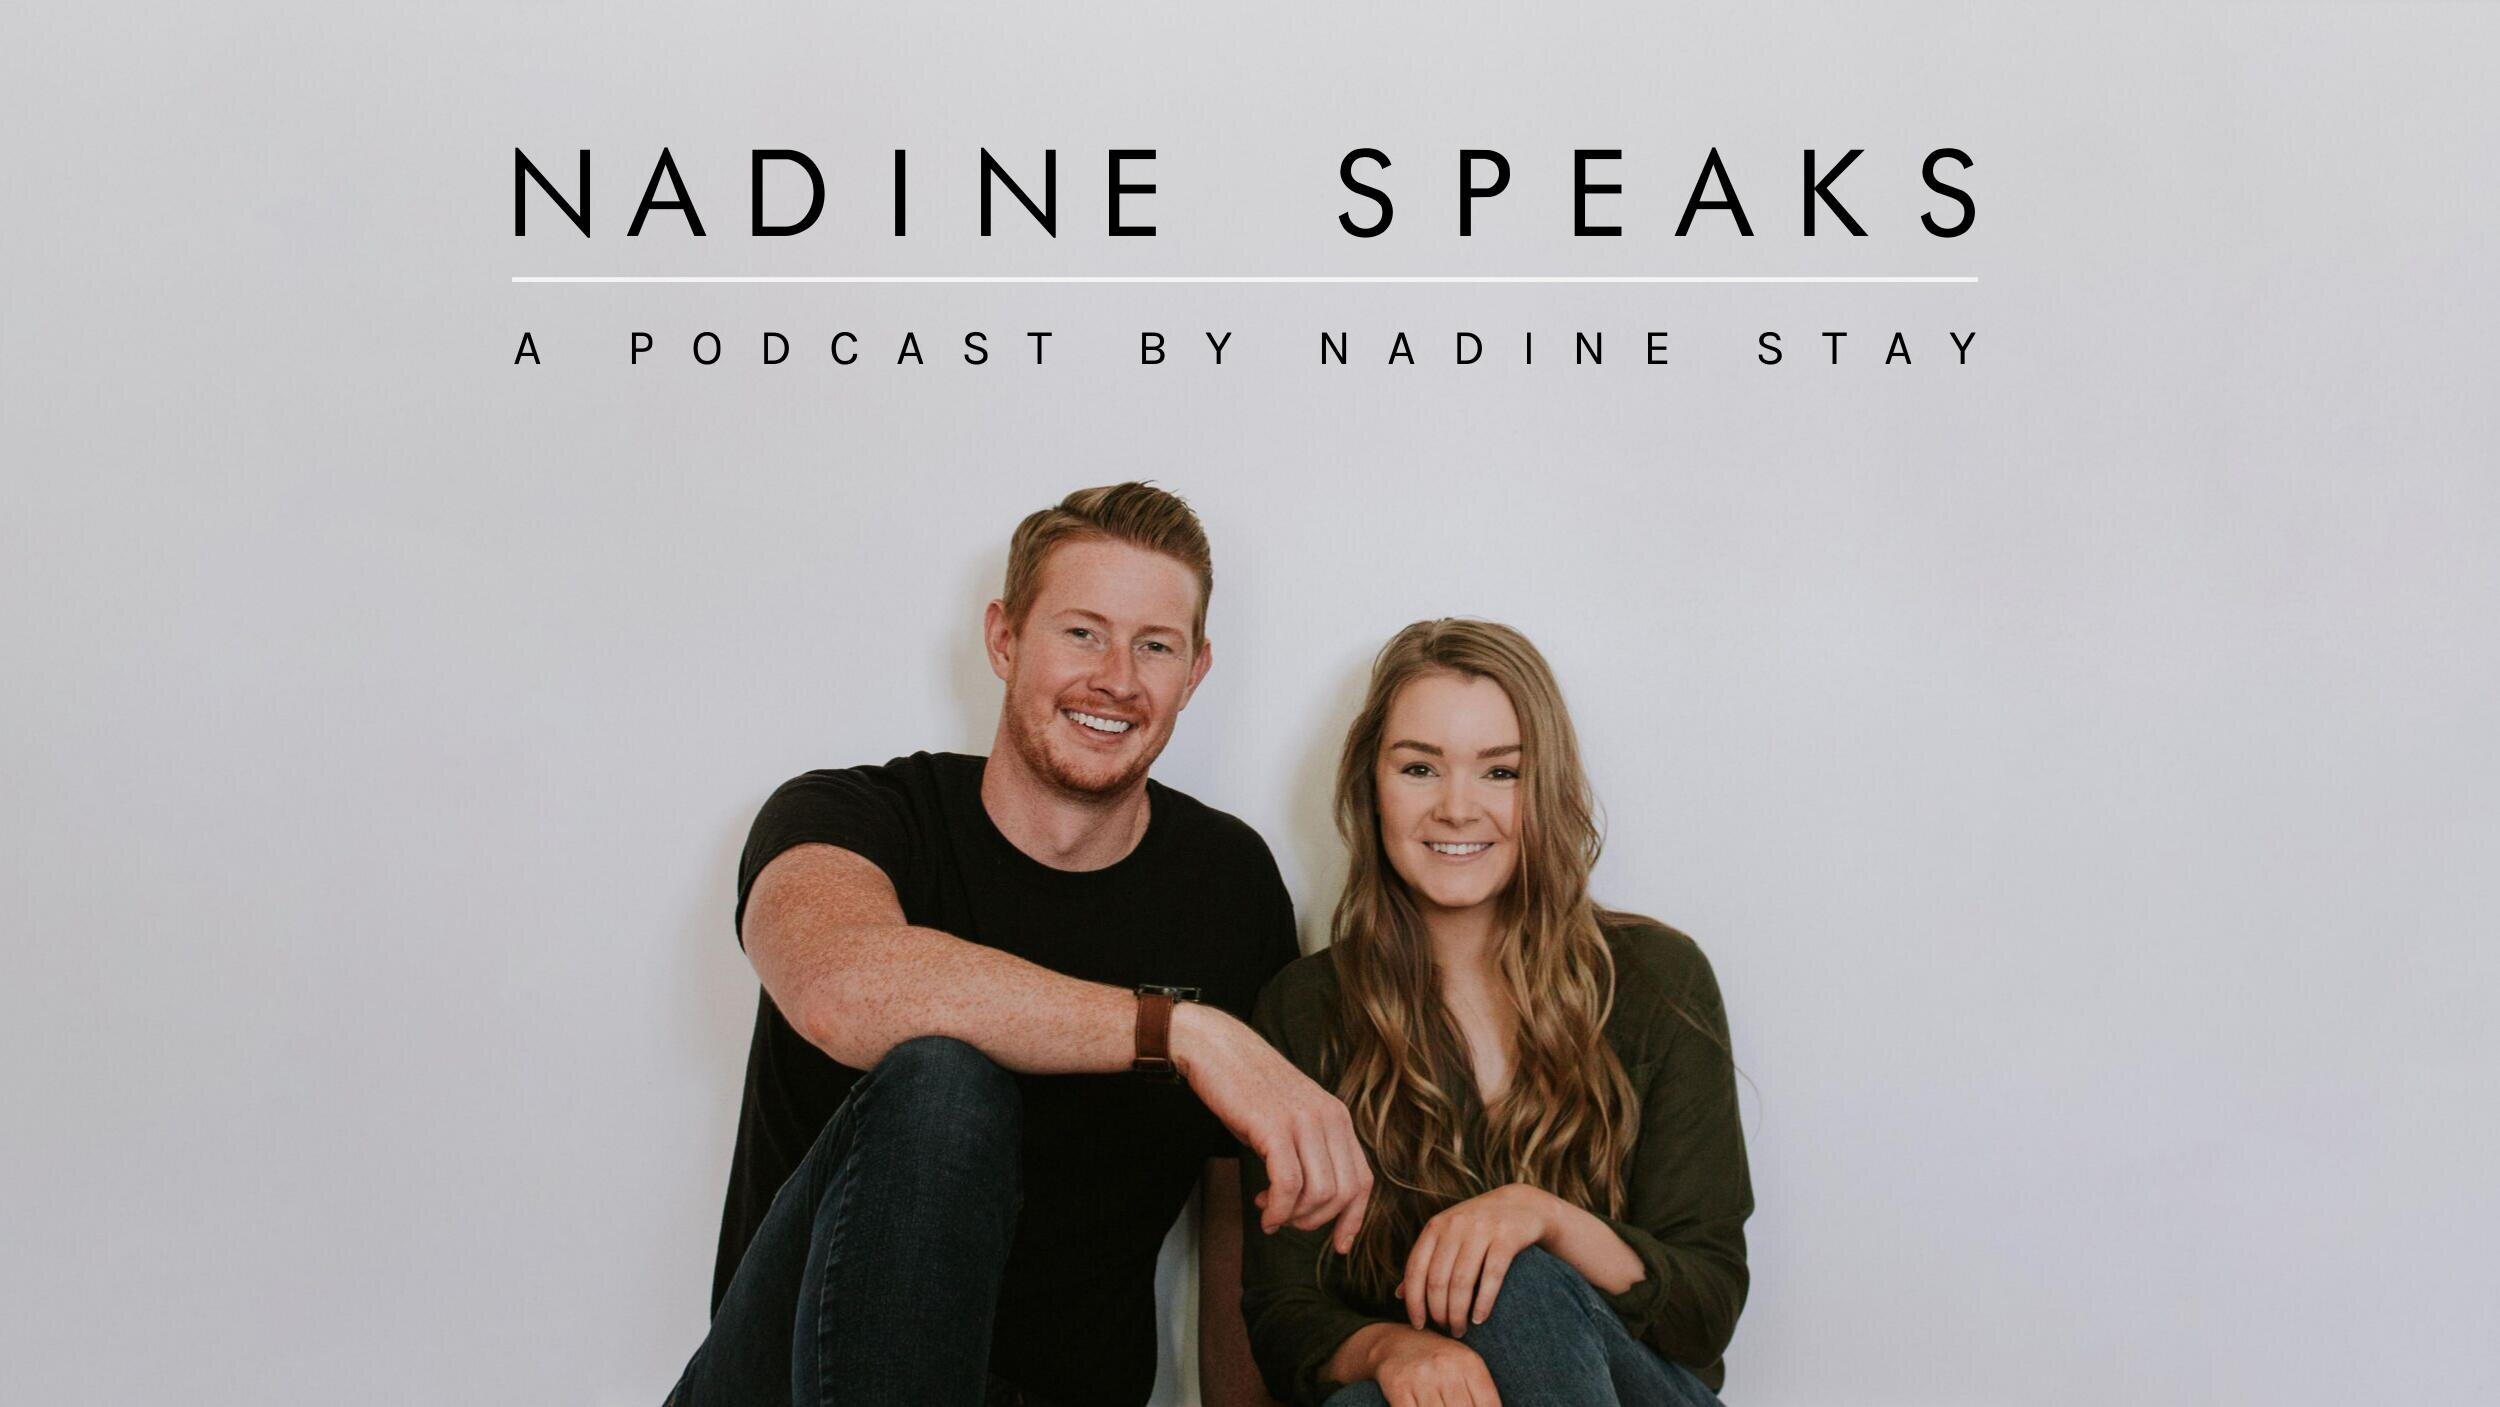 Nadine Speaks - A podcast by Nadine Stay. Hosted by Danica and Chris. Interior Design tips, home renovation advice, and relatable life stories.